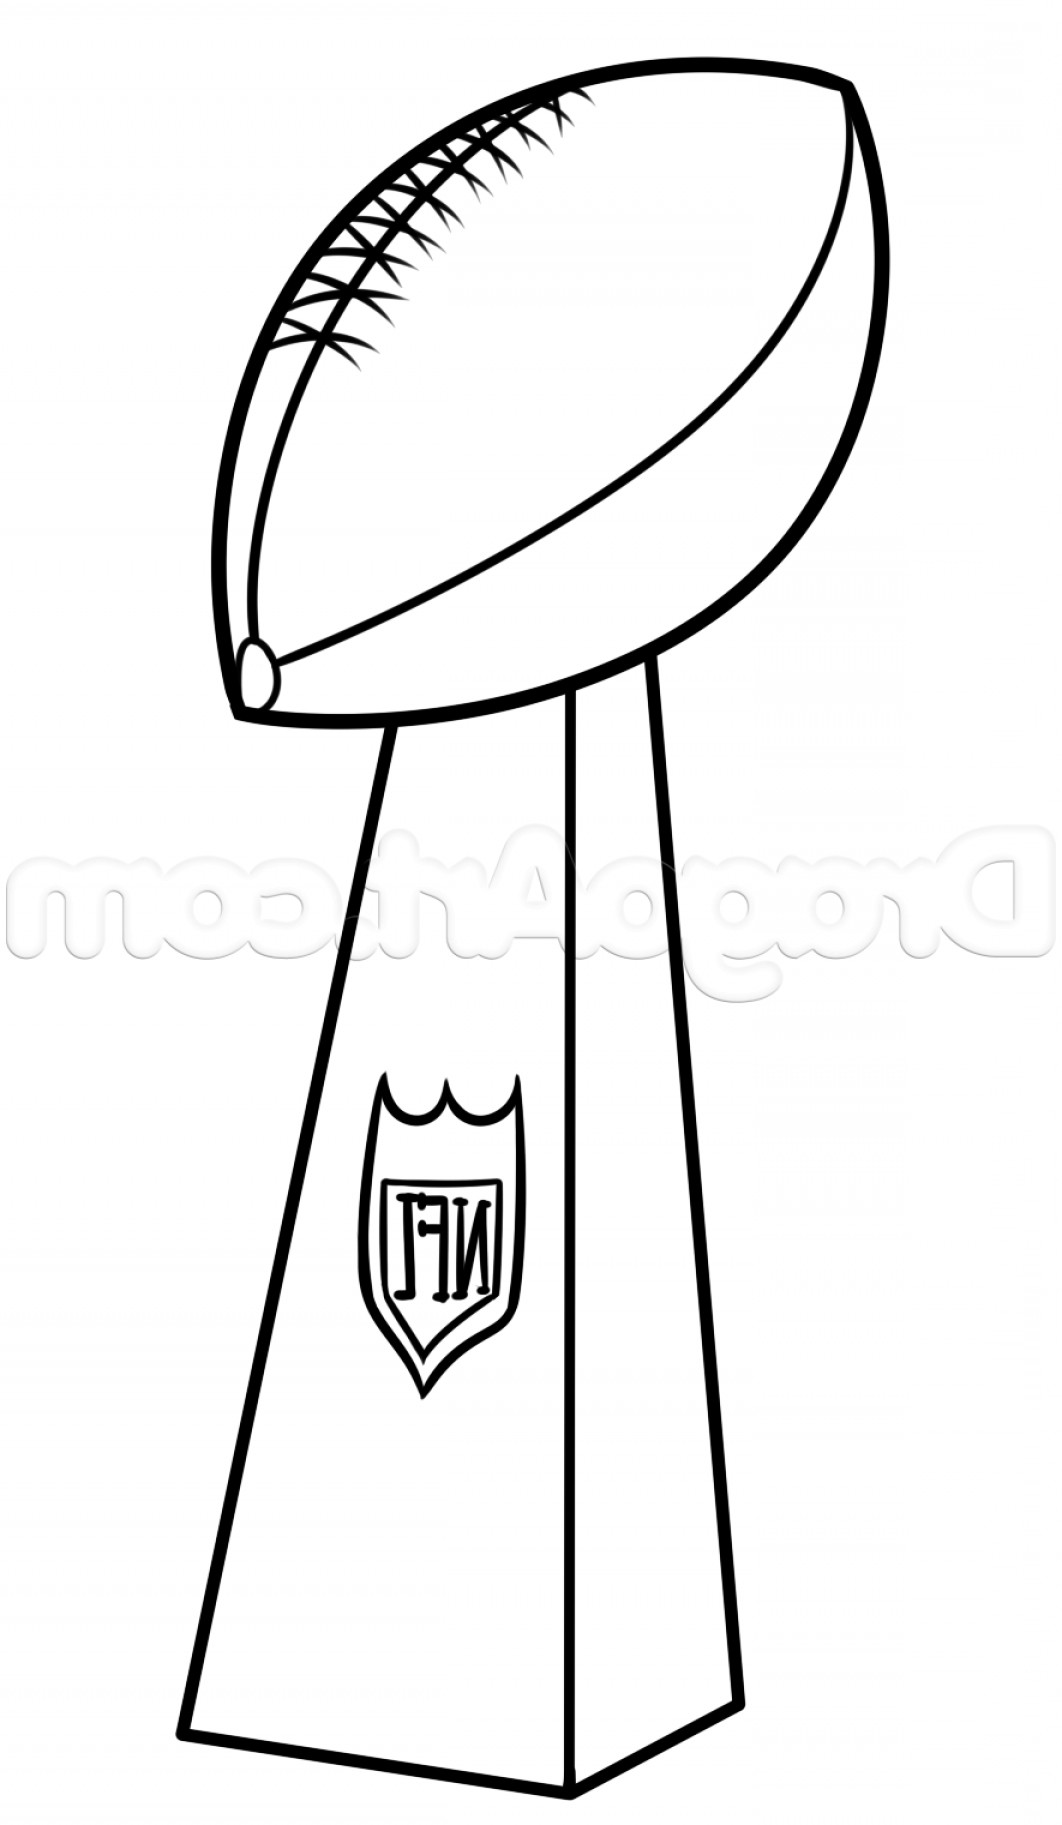 Super Bowl Drawing Lesson Vince Lombardi Trophy.